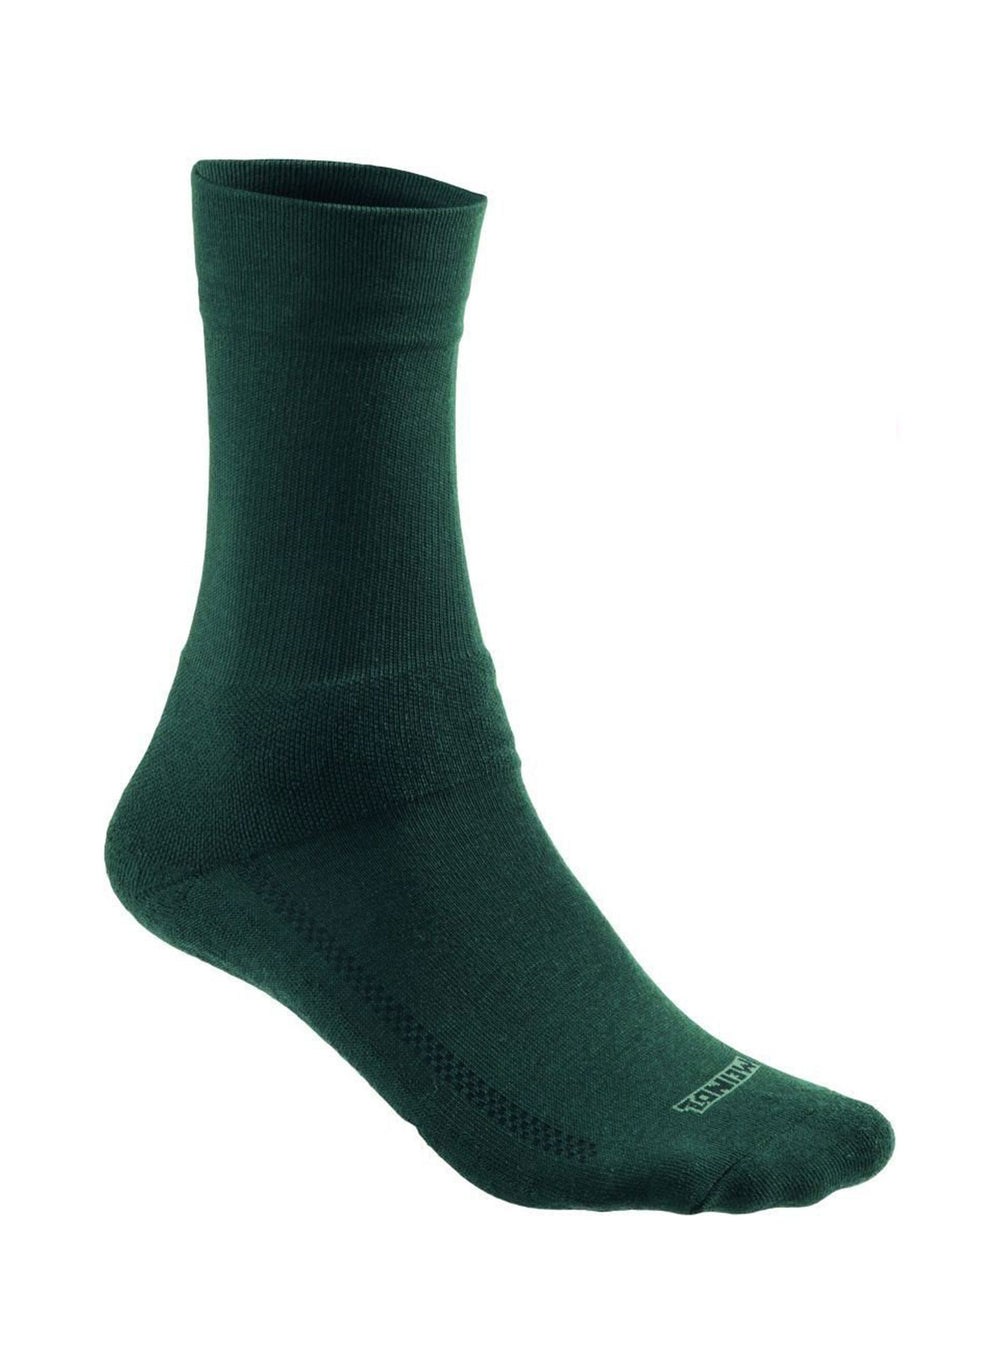 Meindl Leisure Socks